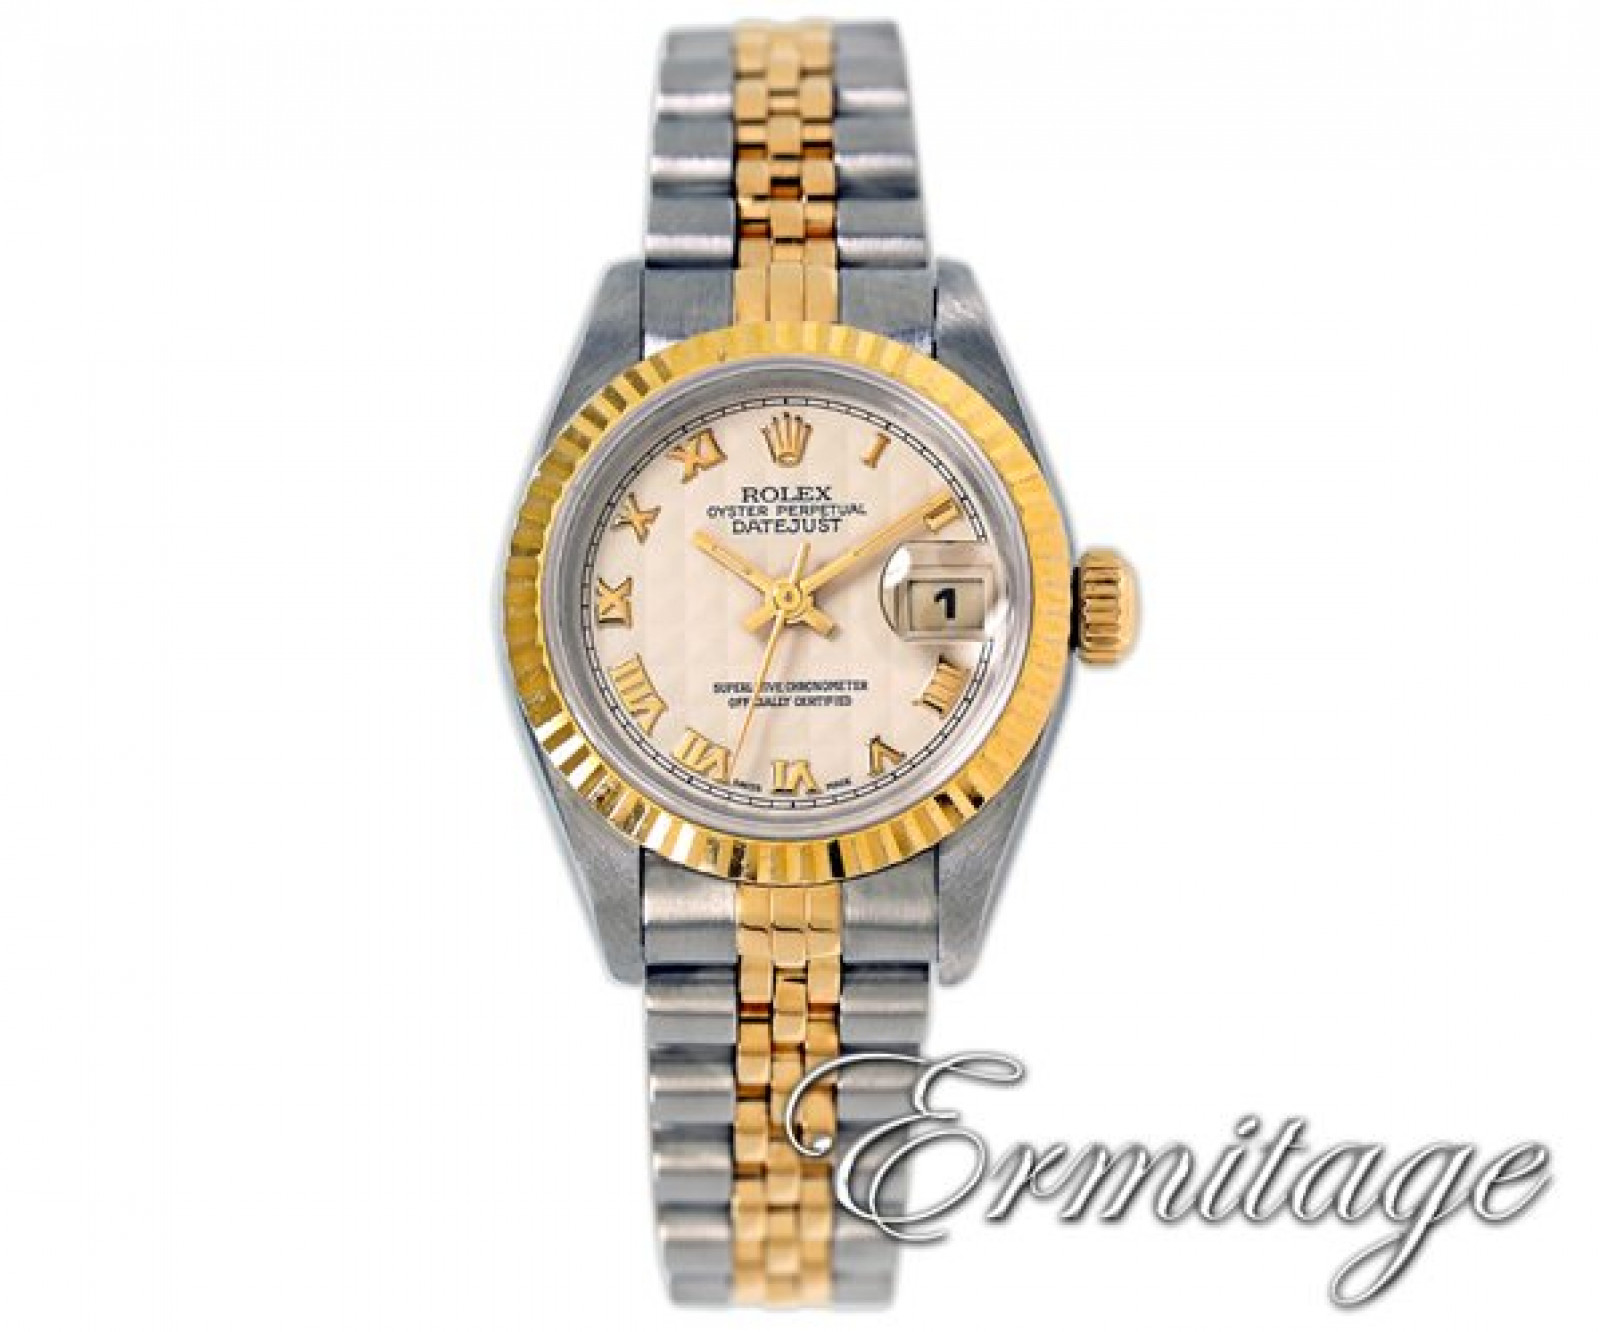 Rolex Datejust 69173 Gold & Steel with White Dial Year 1998